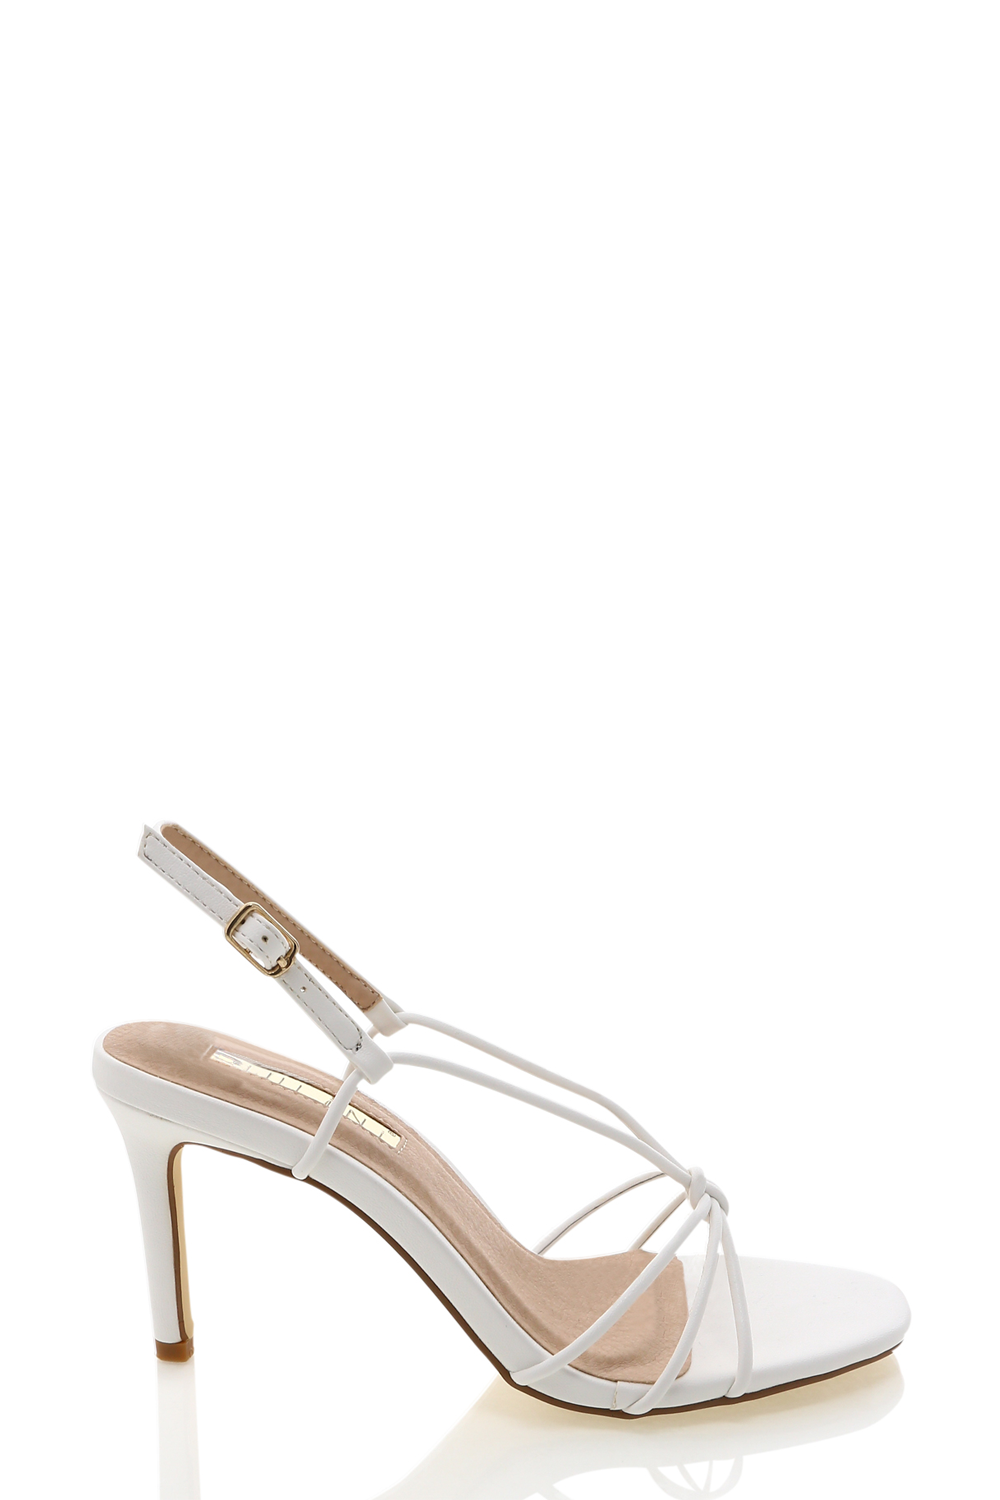 Janie Heels by Billini in White